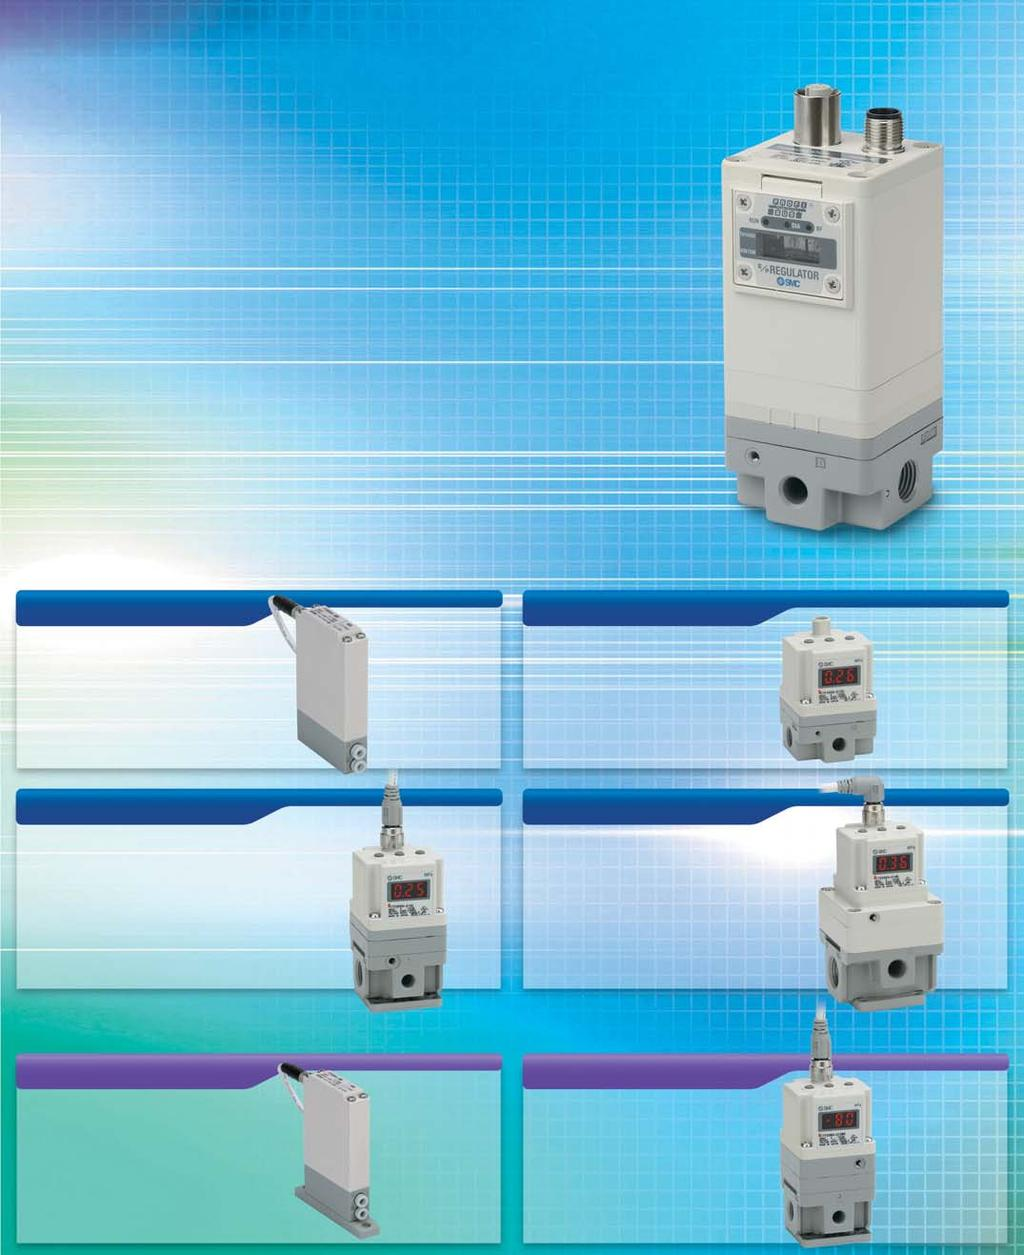 Electro-Pneumatic Regulator Electronic Vacuum Regulator New Stepless control of air pressure proportional to an electrical signal Added Fieldbus compliant specifications to Series ITV//!